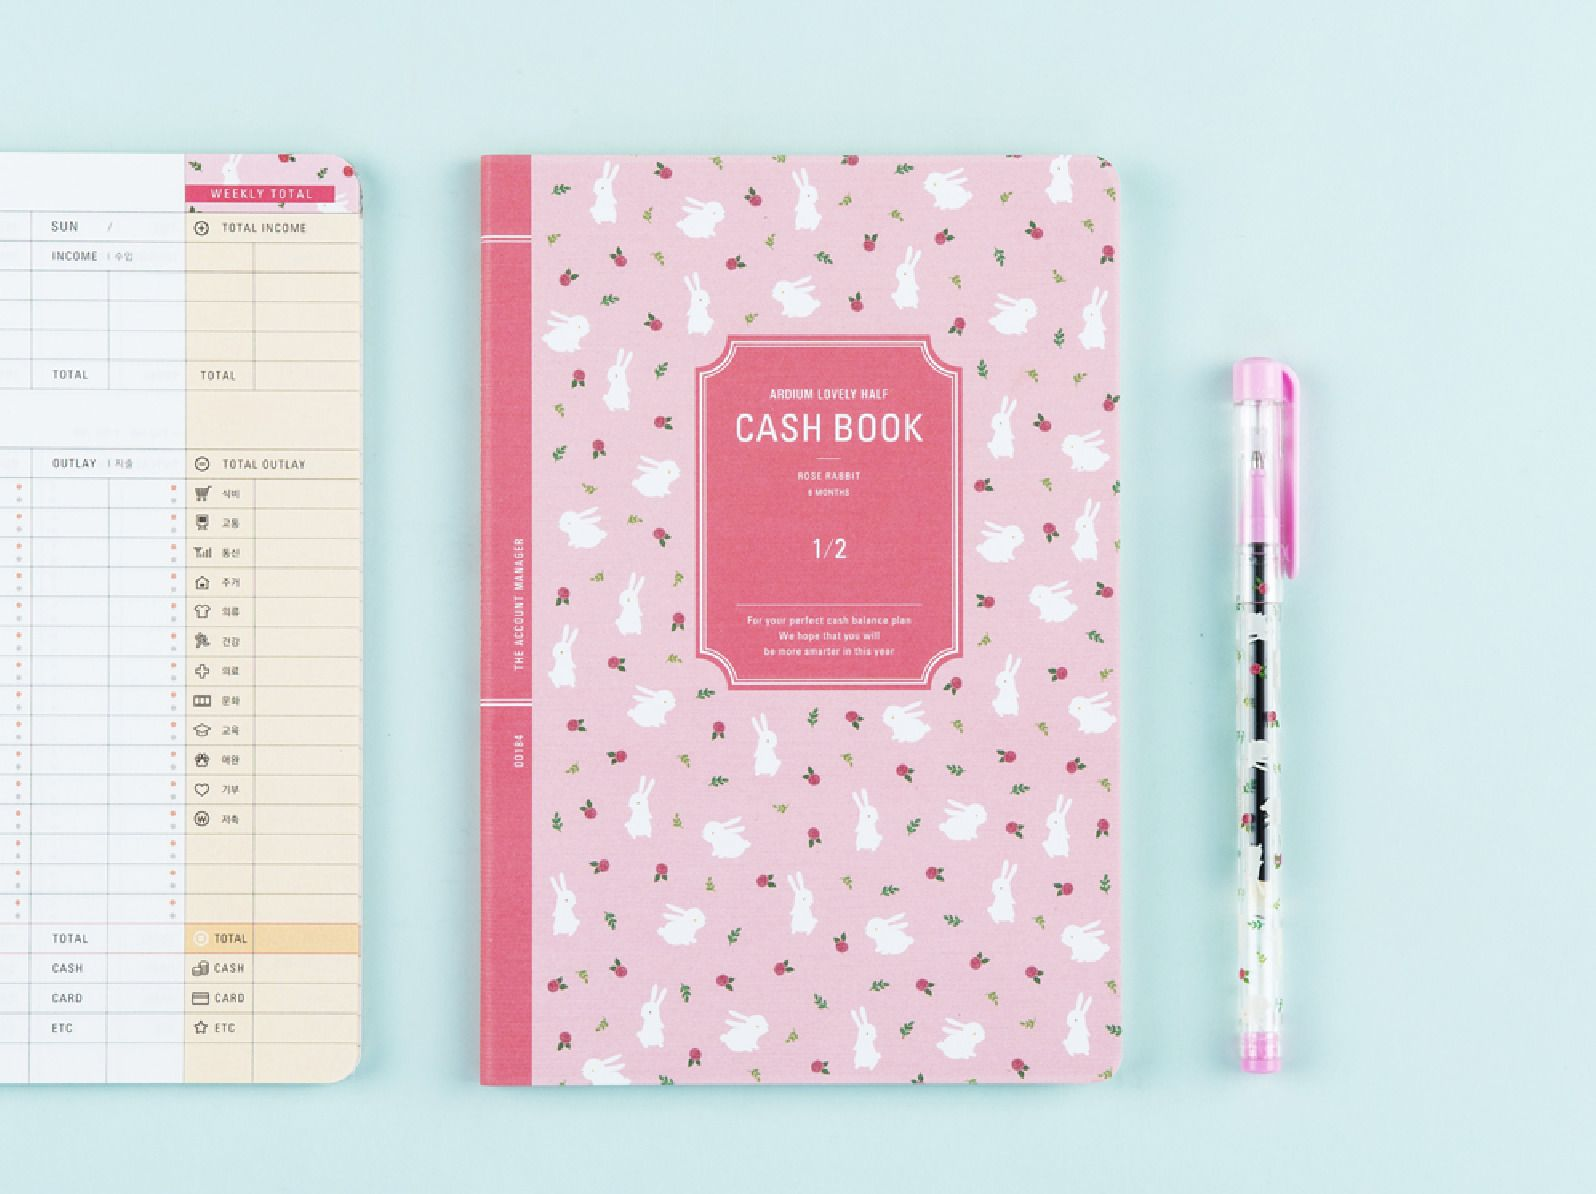 Ardium Semi Year Cash Book